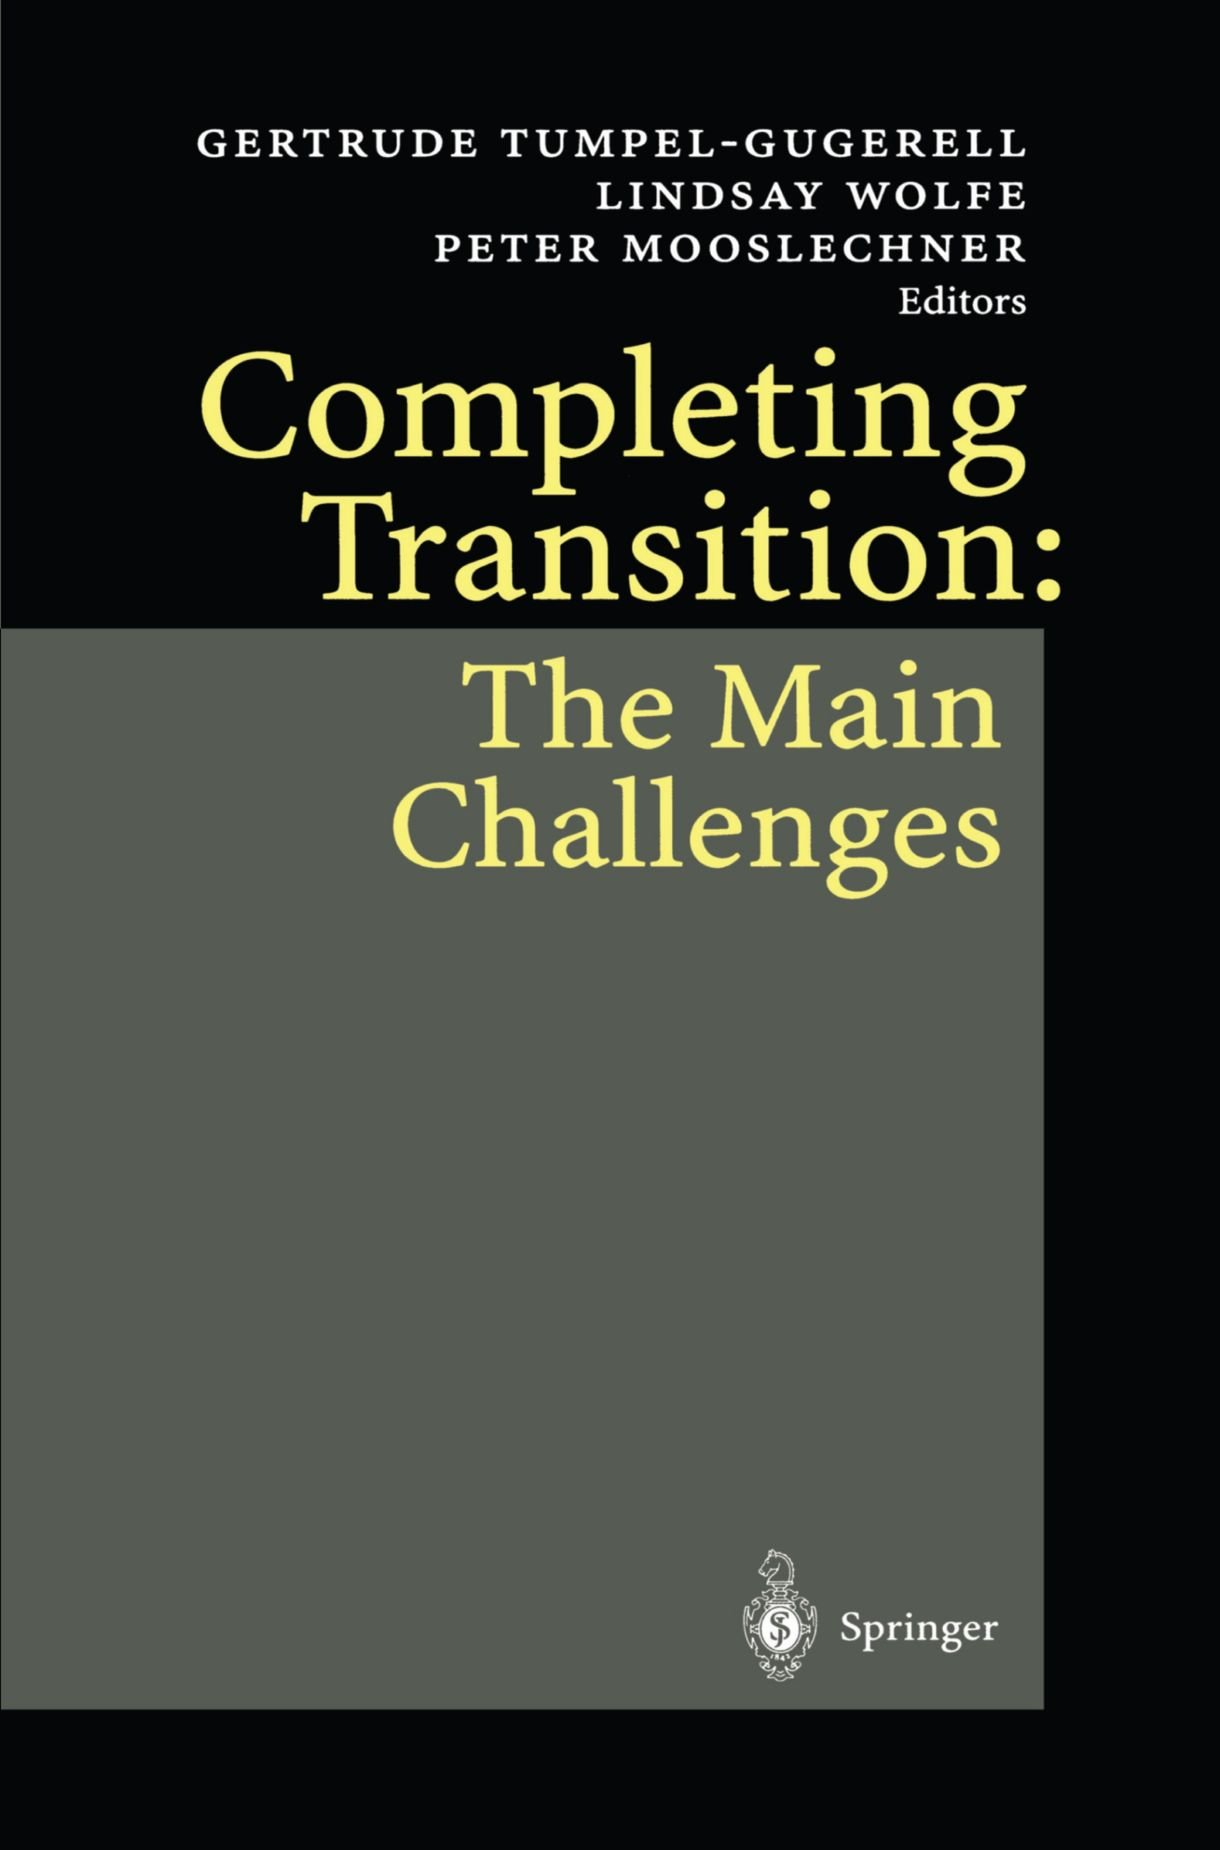 Completing Transition: The Main Challenges